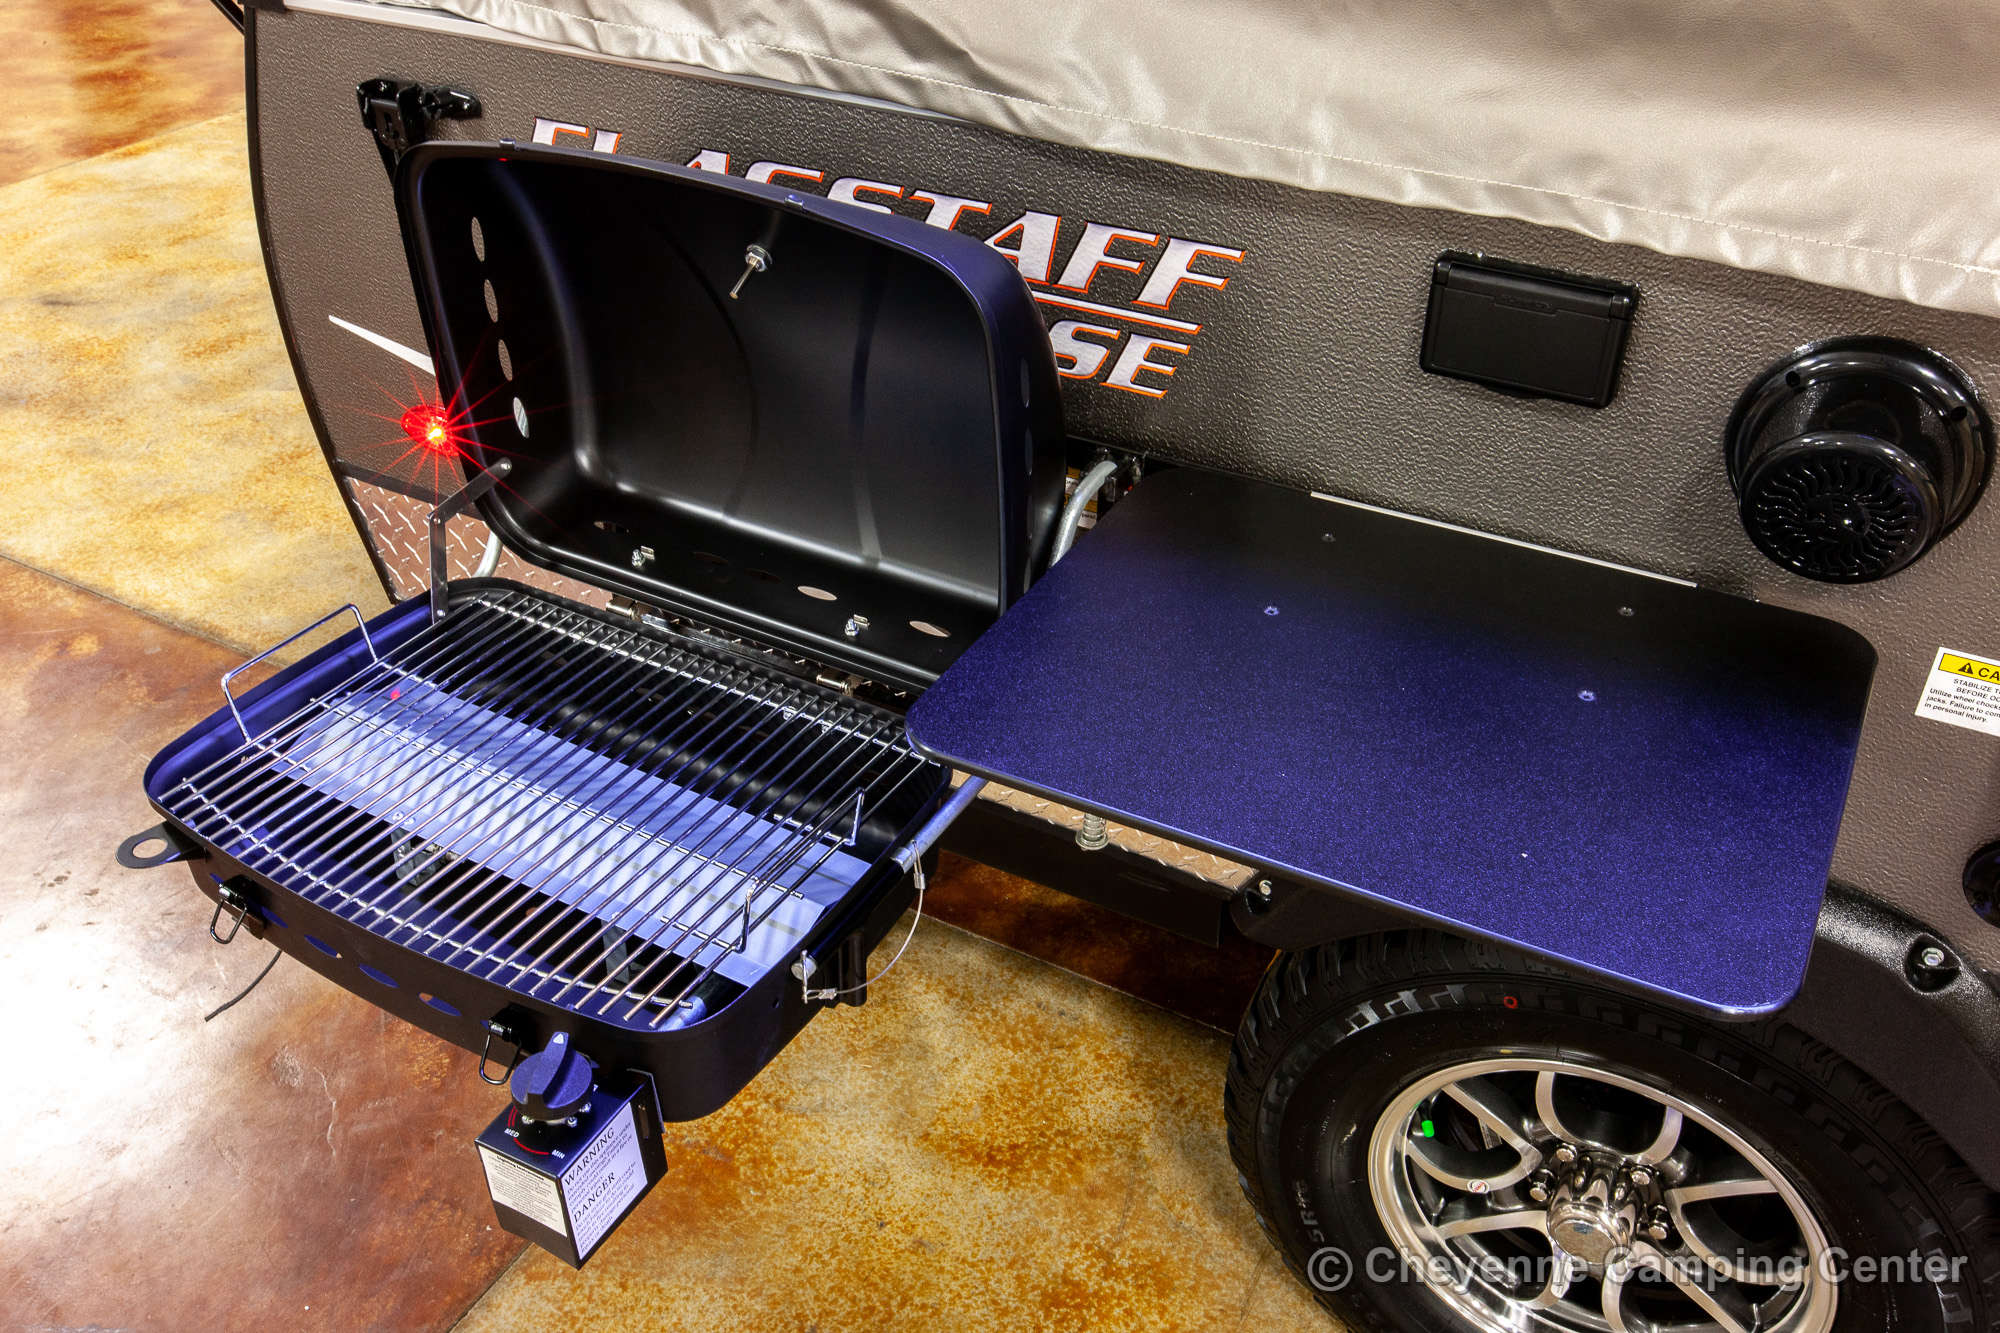 2021 Forest River Flagstaff Sports Enthusiast 207SE Folding Camper Exterior Image